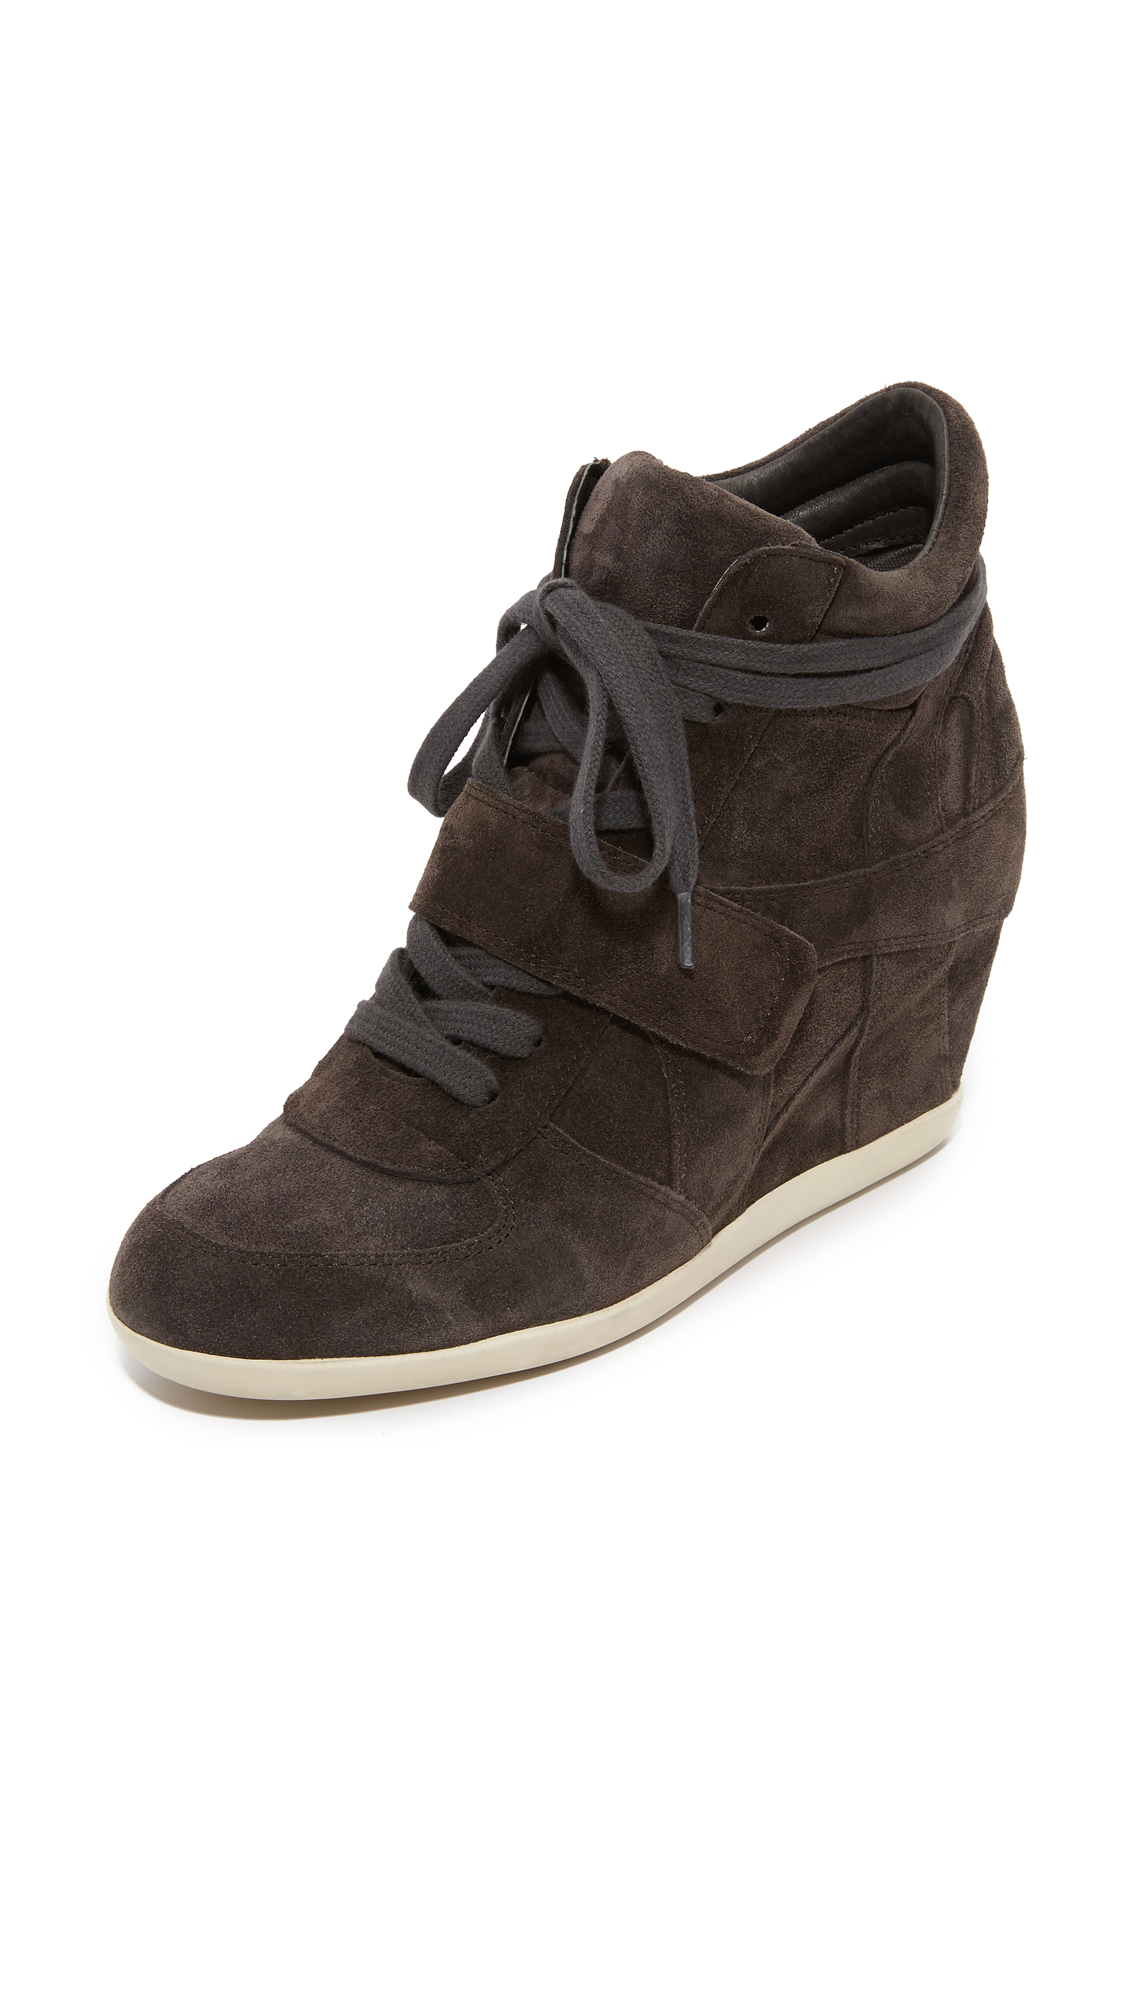 Ash Bowie Wedge Sneakers - Bistro at Shopbop